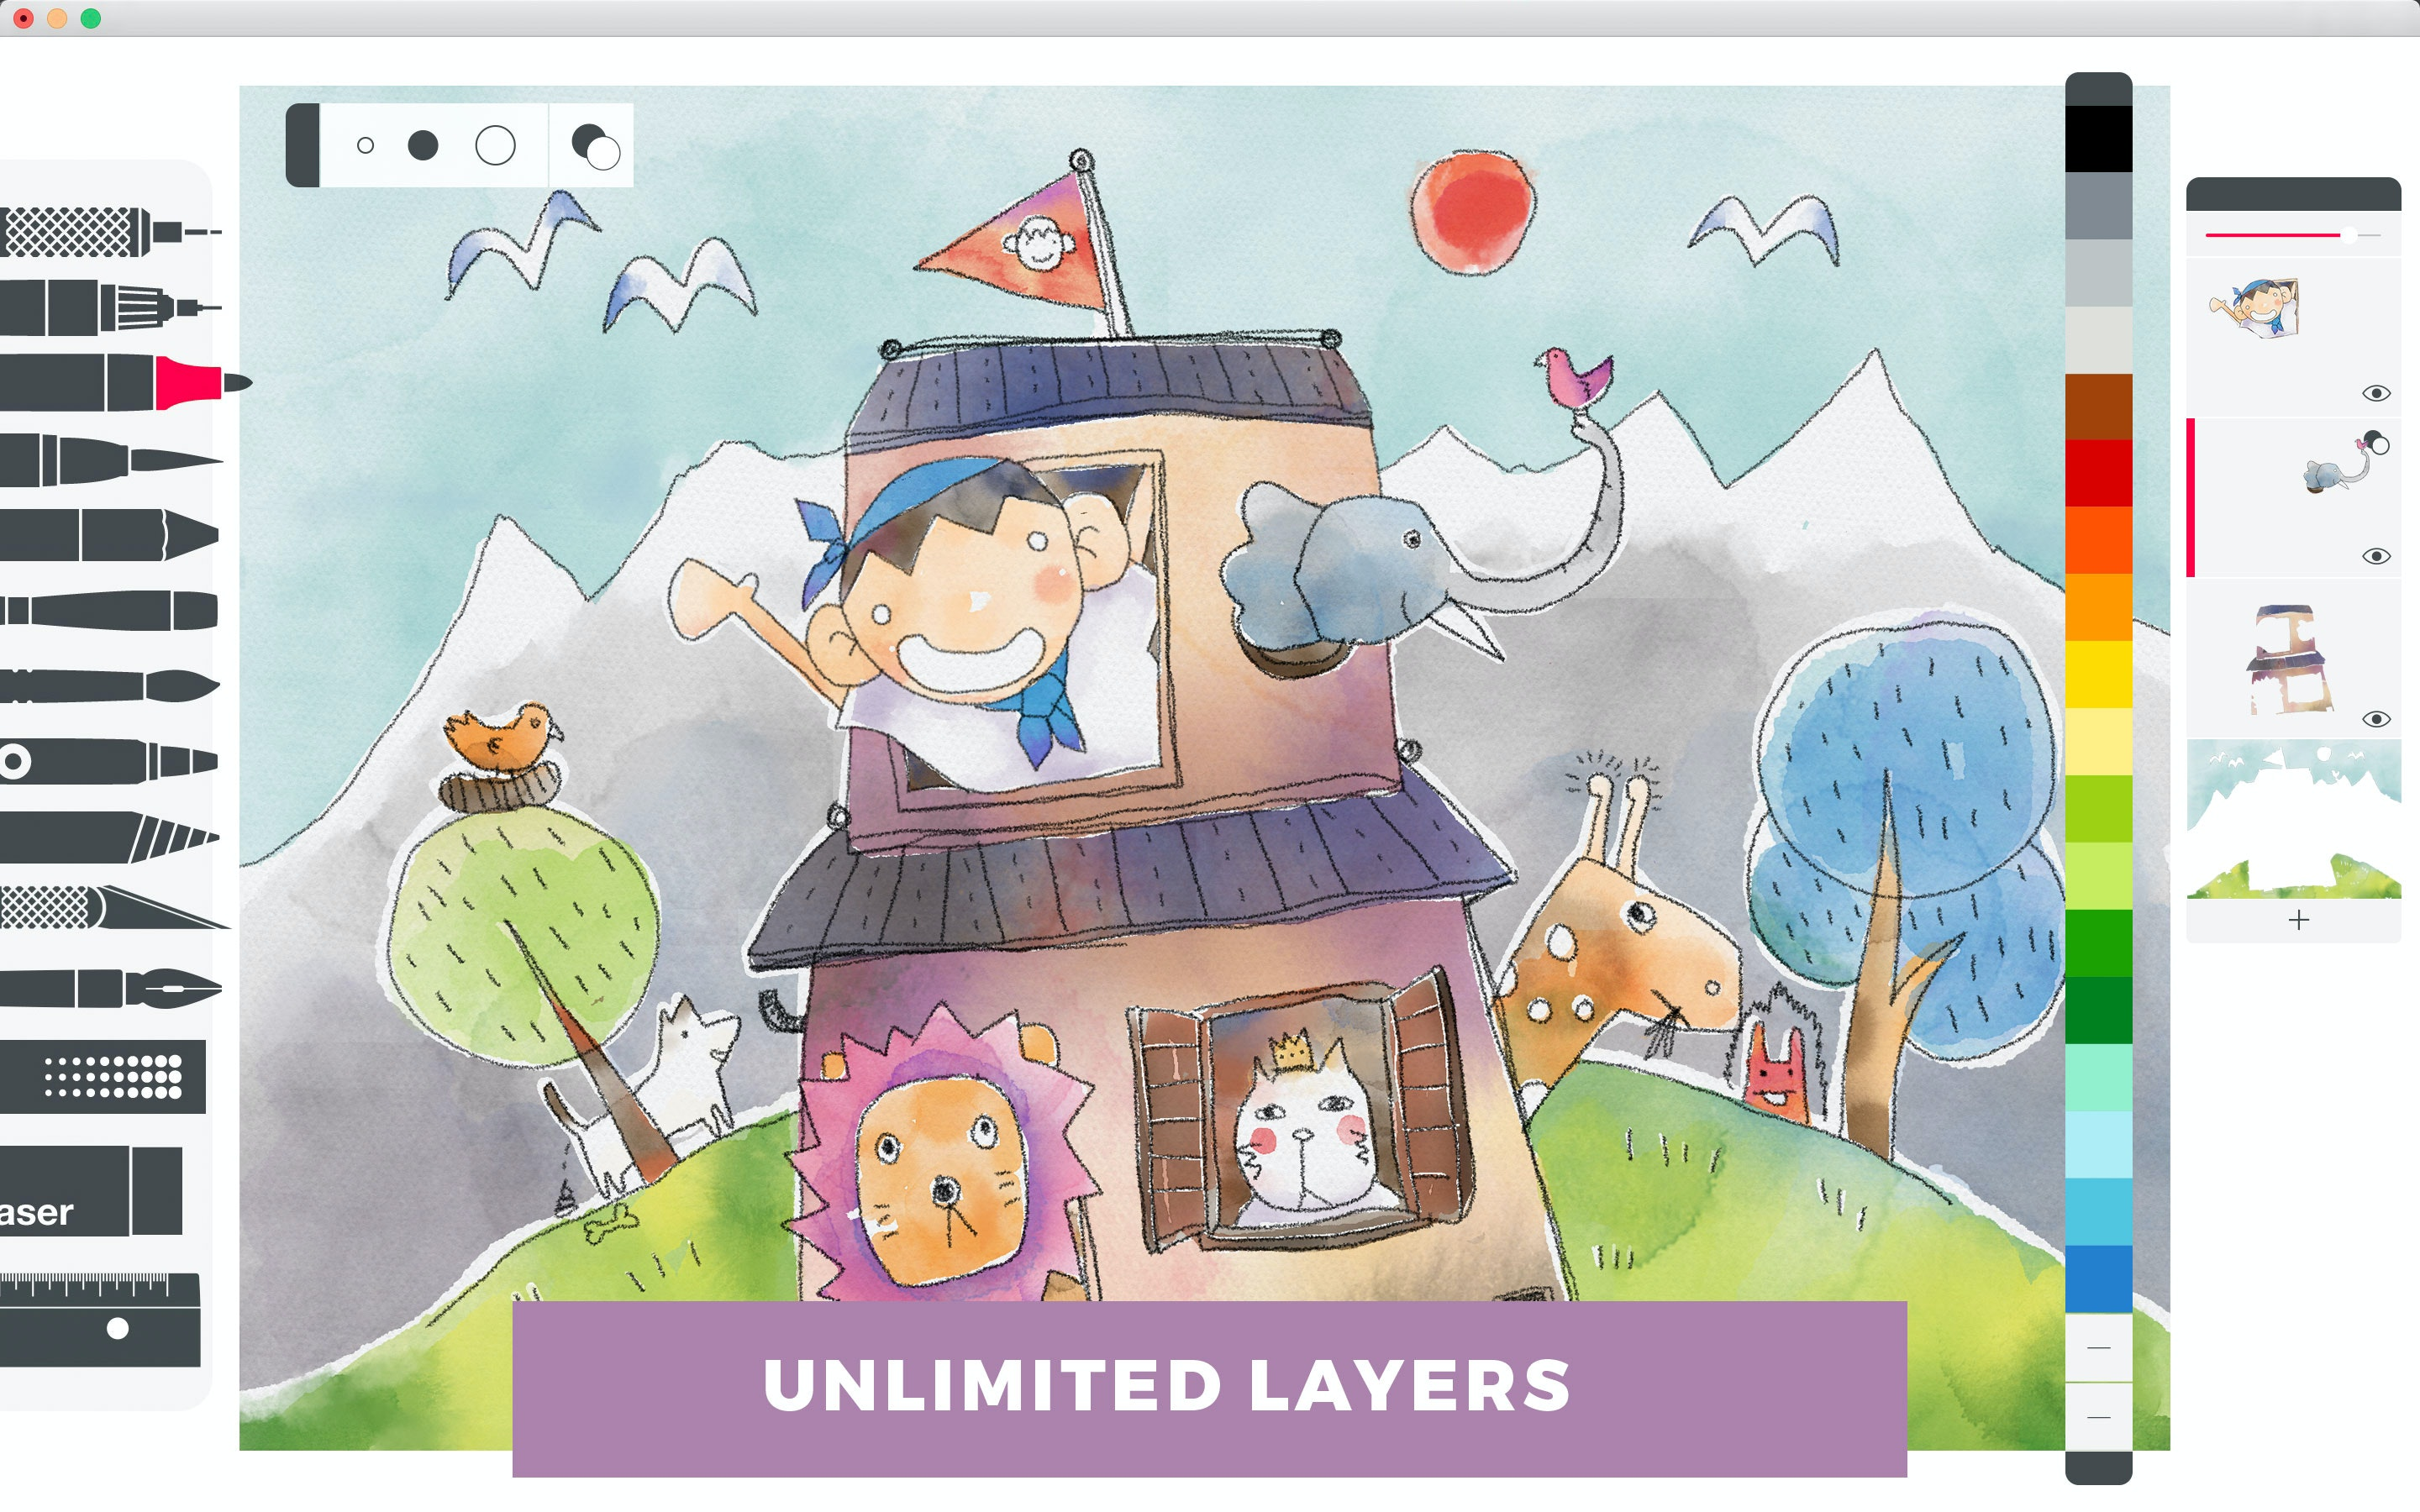 Draw with unlimited layers.